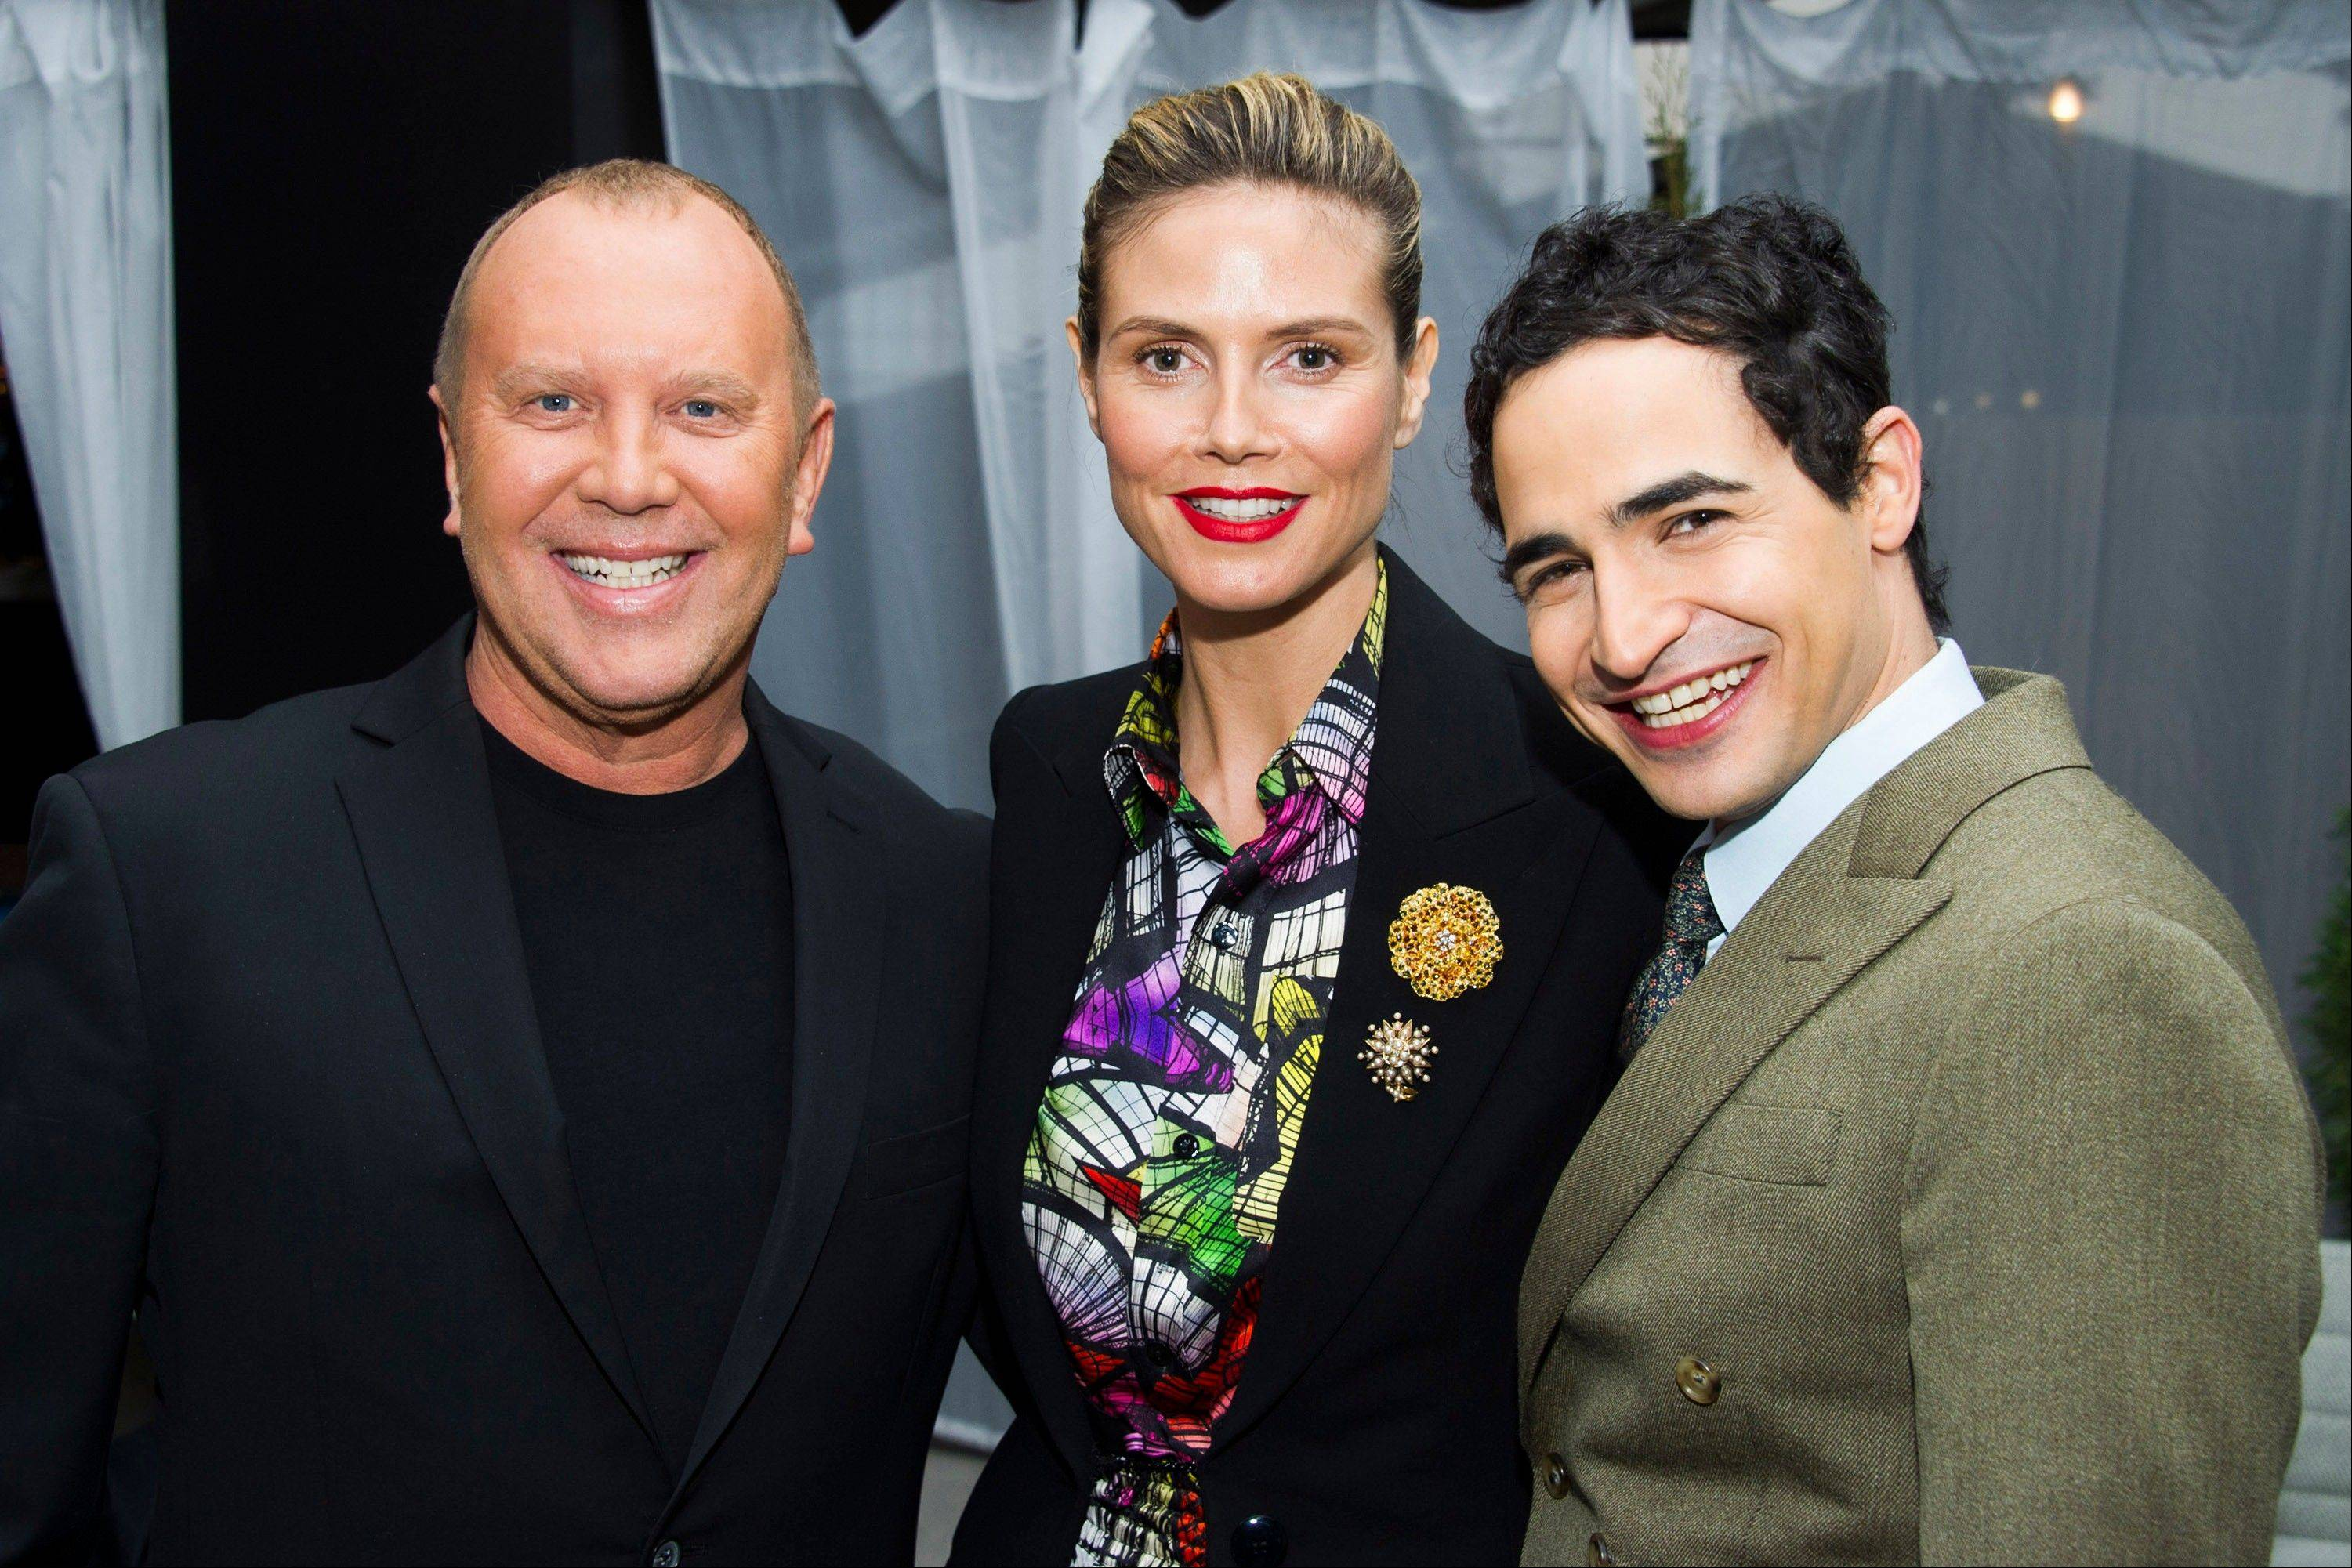 Michael Kors, from left, Heidi Klum and Zac Posen pose Friday before the Fall 2013 Project Runway fashion show in New York.